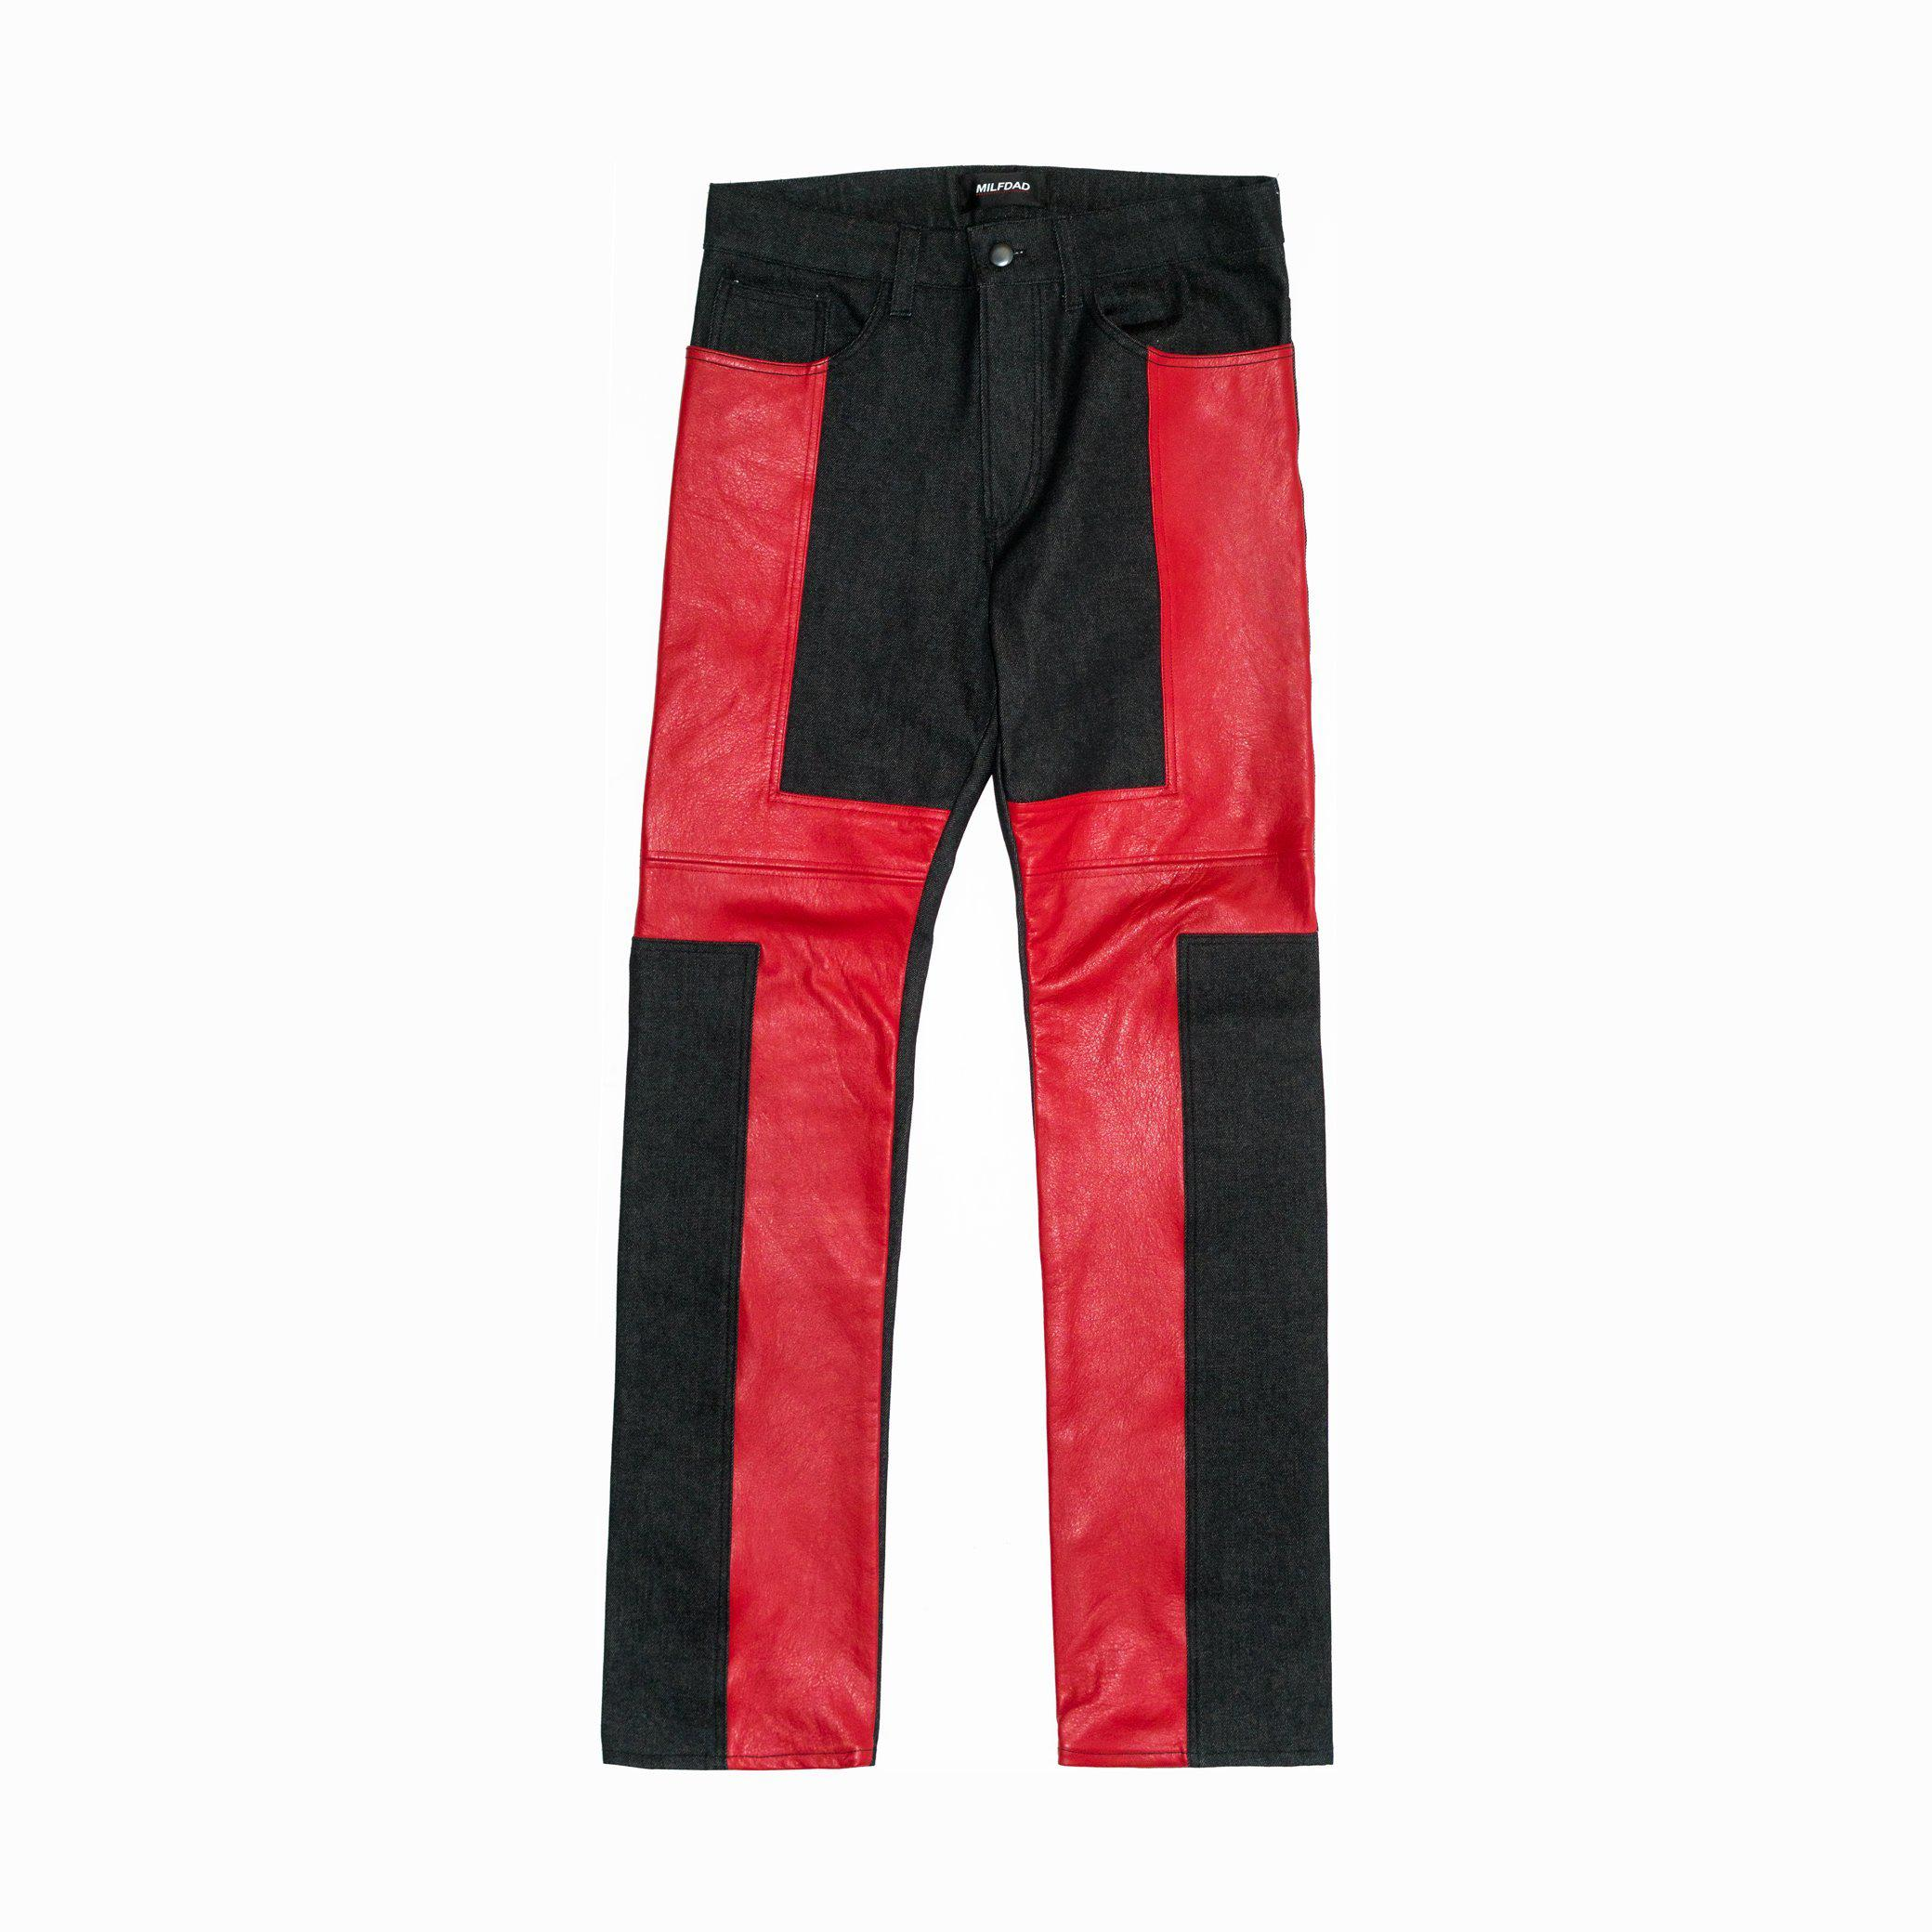 LEATHER DETAIL DENIM - BLACK/RED (MADE TO ORDER)-MILFDAD